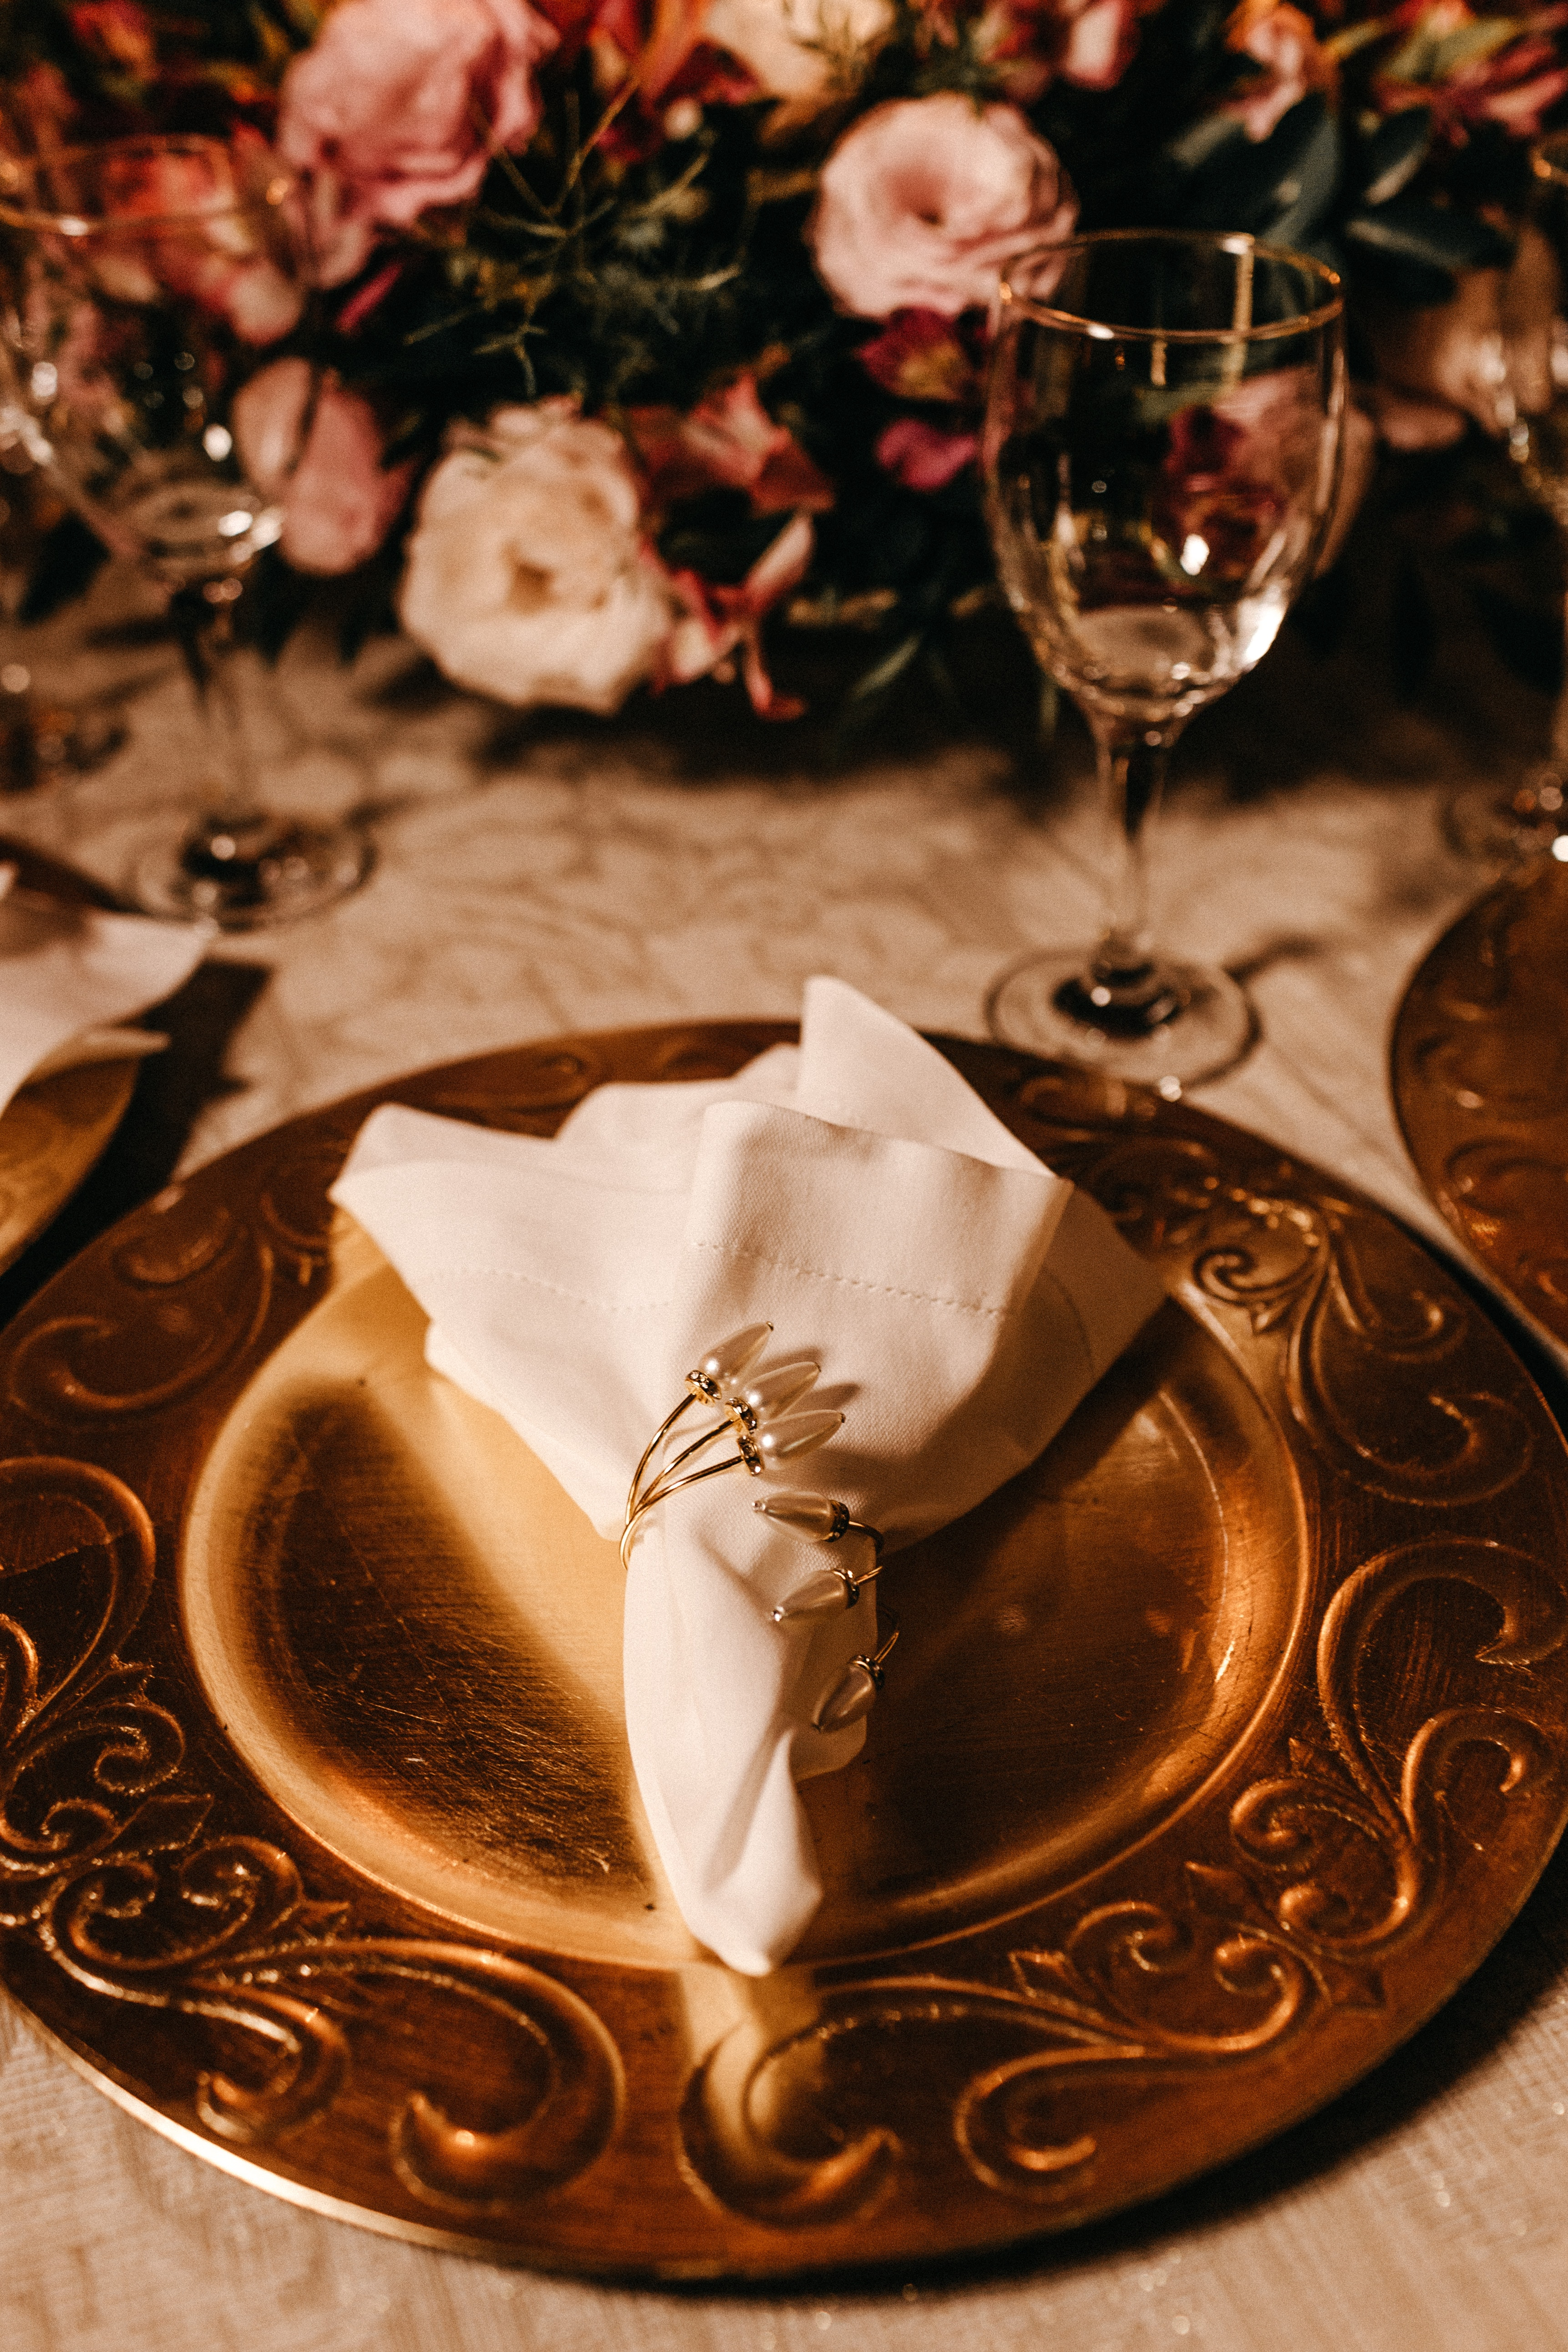 How to Print Custom Napkins for Your Next Party from North Carolina Lifestyle Blogger Champagne Style Bare Budget